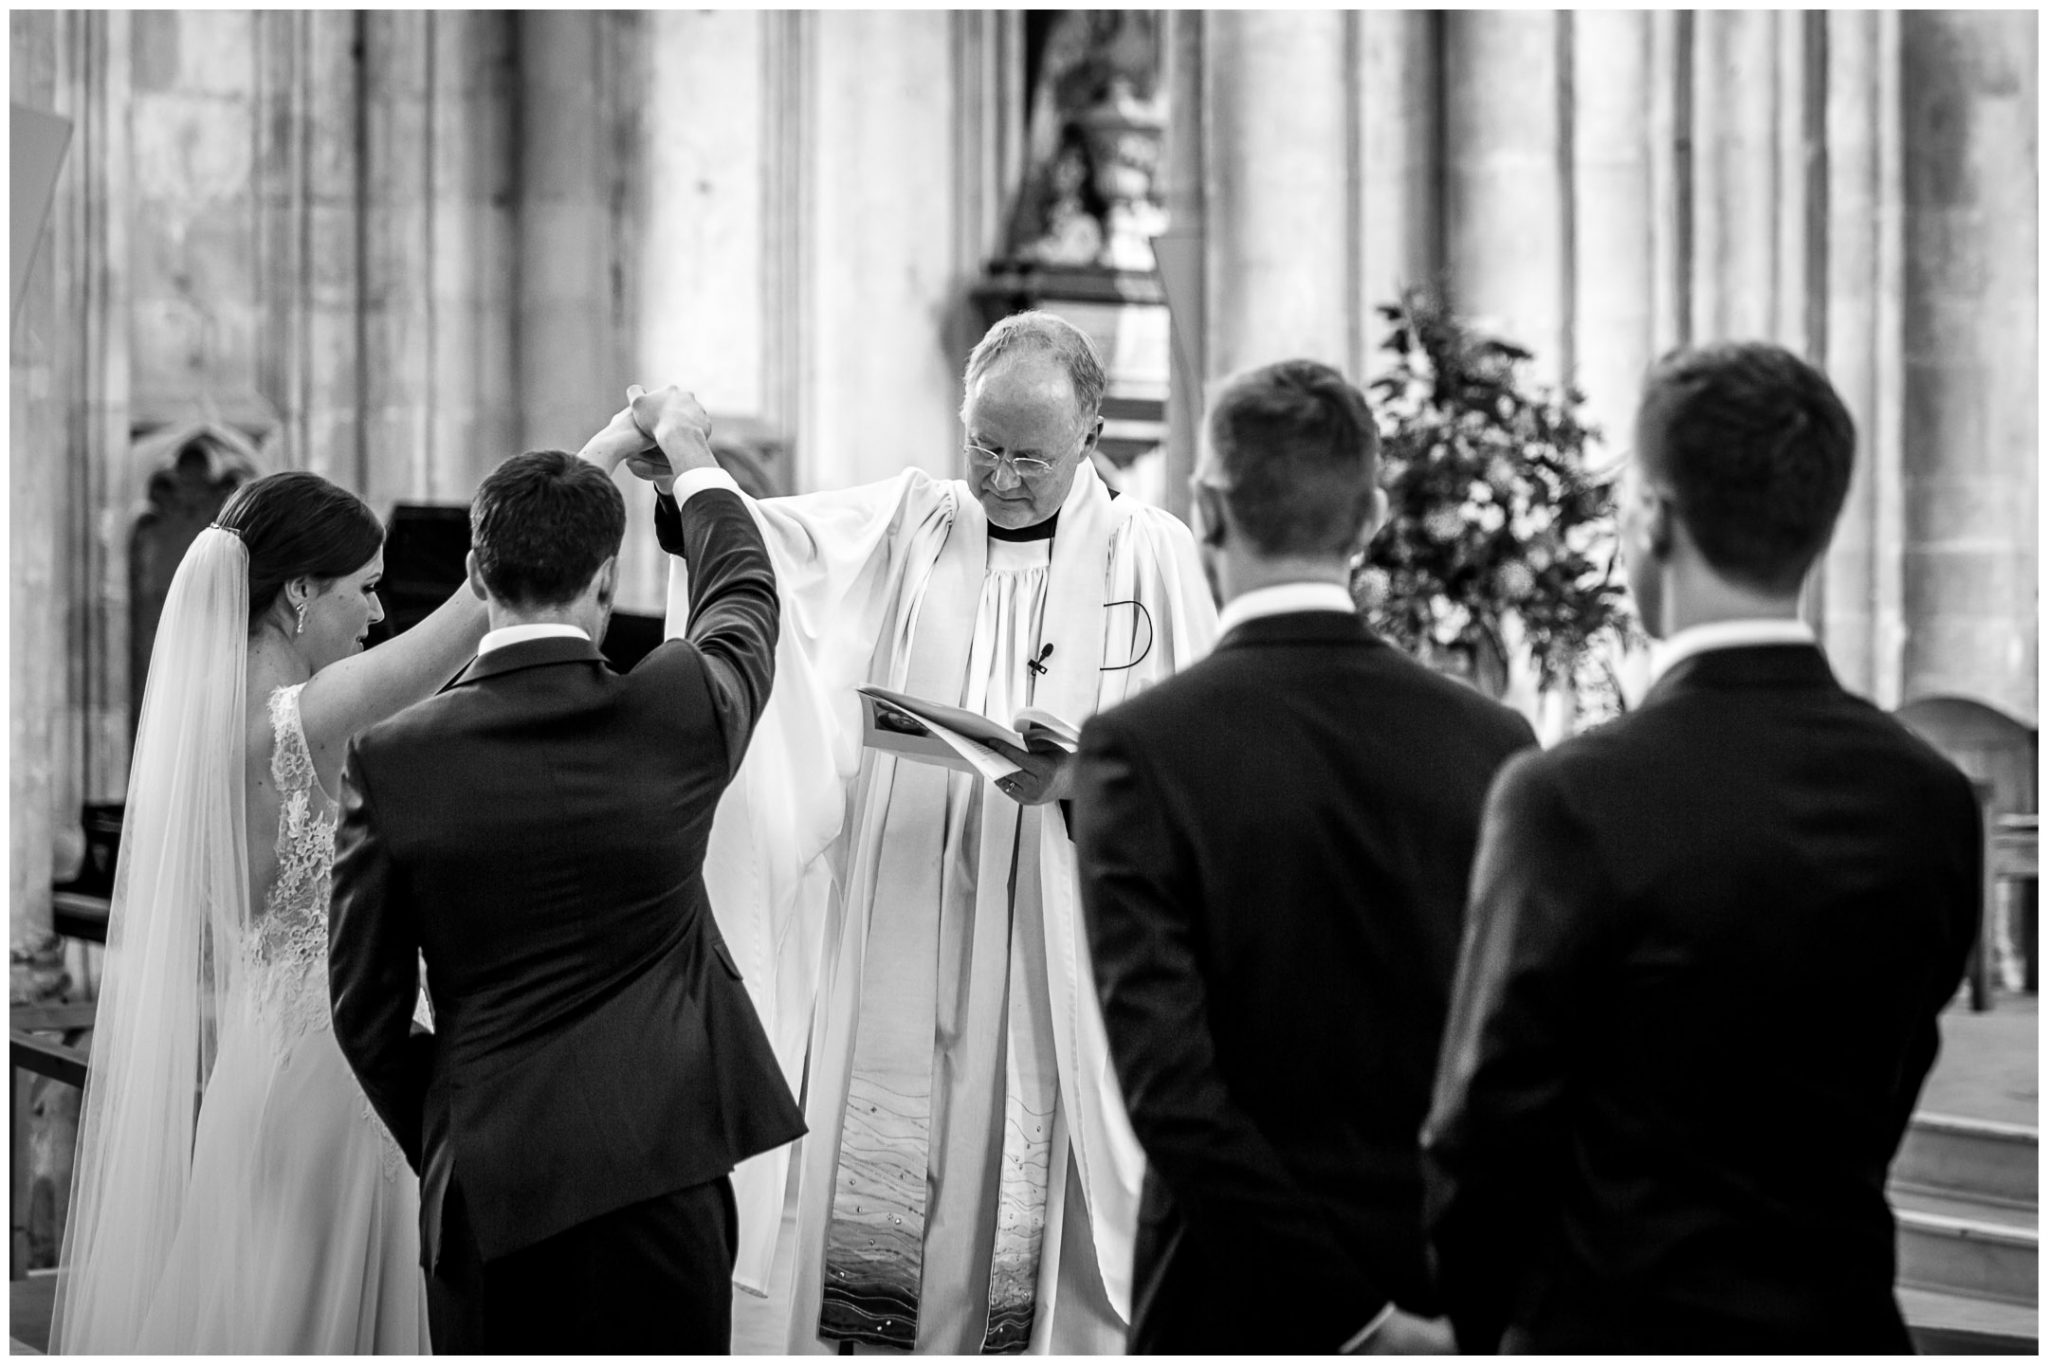 winchester cathedral wedding photography raising of hands to seal marriage